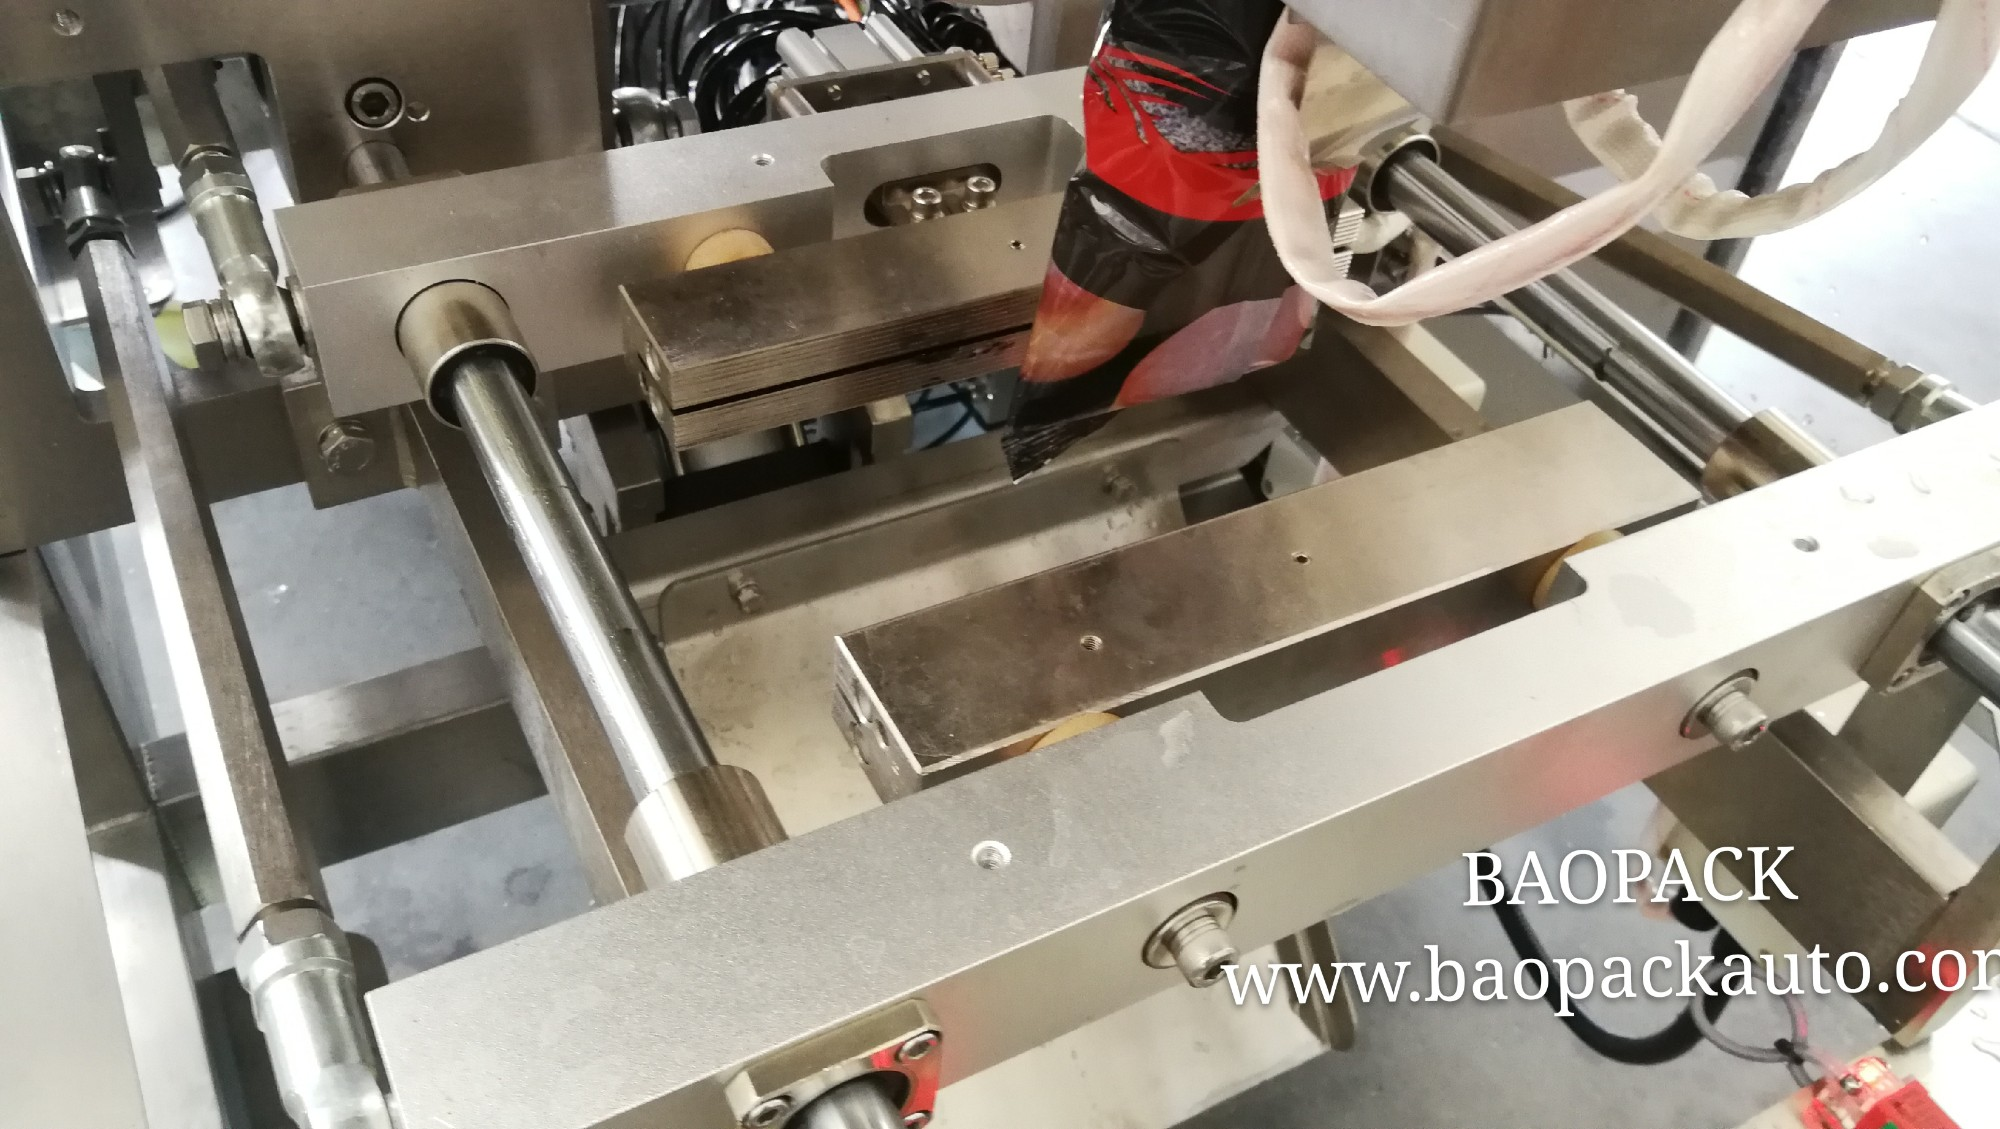 Baopack VP42 Vertical Packing Machine With Liquid Pump in Low Price Manufacturers, Baopack VP42 Vertical Packing Machine With Liquid Pump in Low Price Factory, Supply Baopack VP42 Vertical Packing Machine With Liquid Pump in Low Price